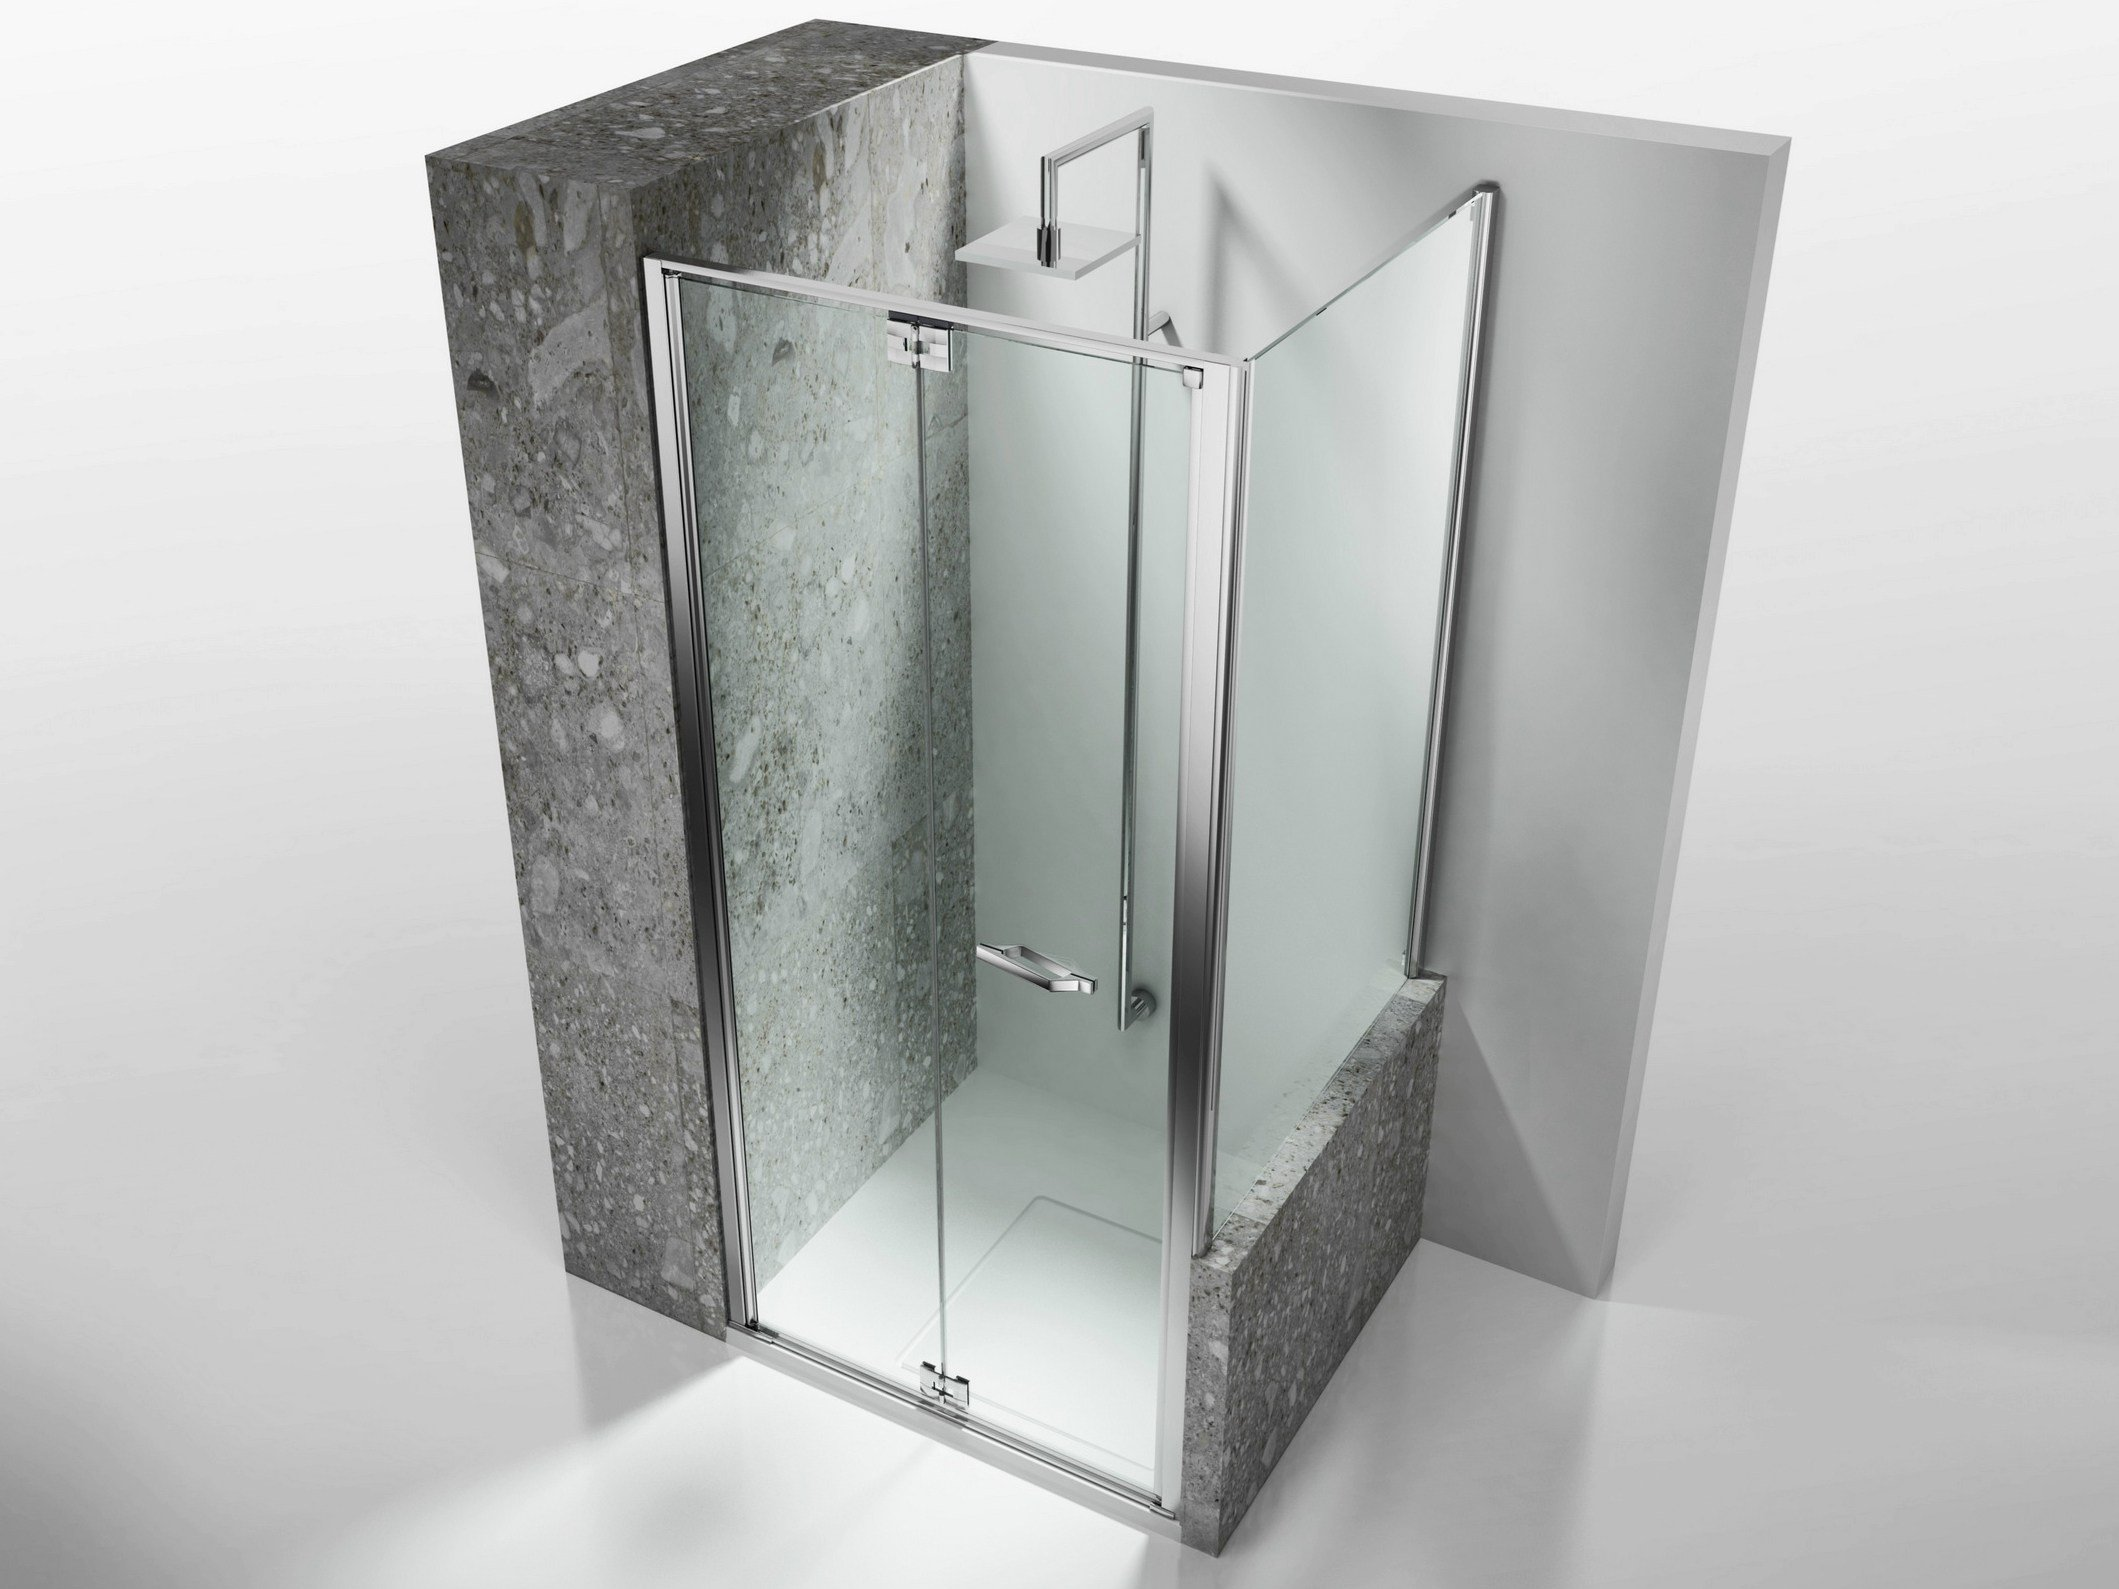 Paroi de douche sur mesure en verre tremp replay rn rv by for Parois de douche en verre